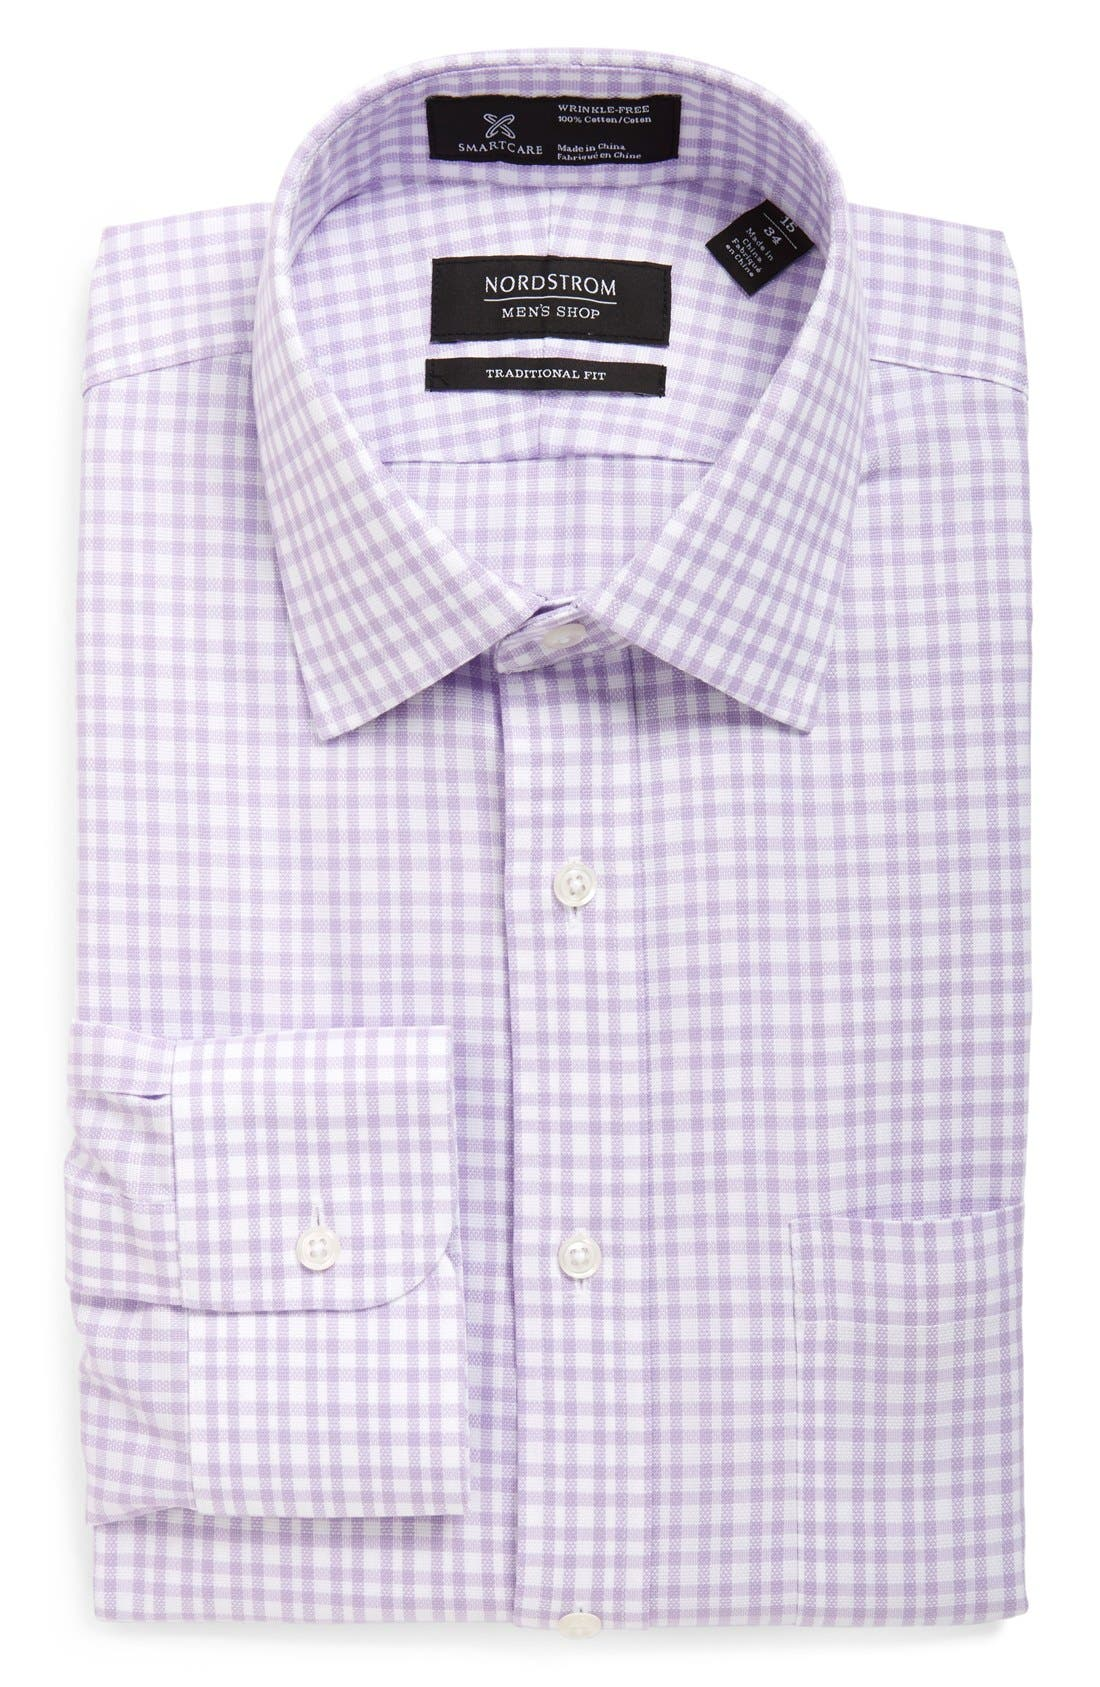 NORDSTROM MEN'S SHOP Smartcare™ Traditional Fit Plaid Dress